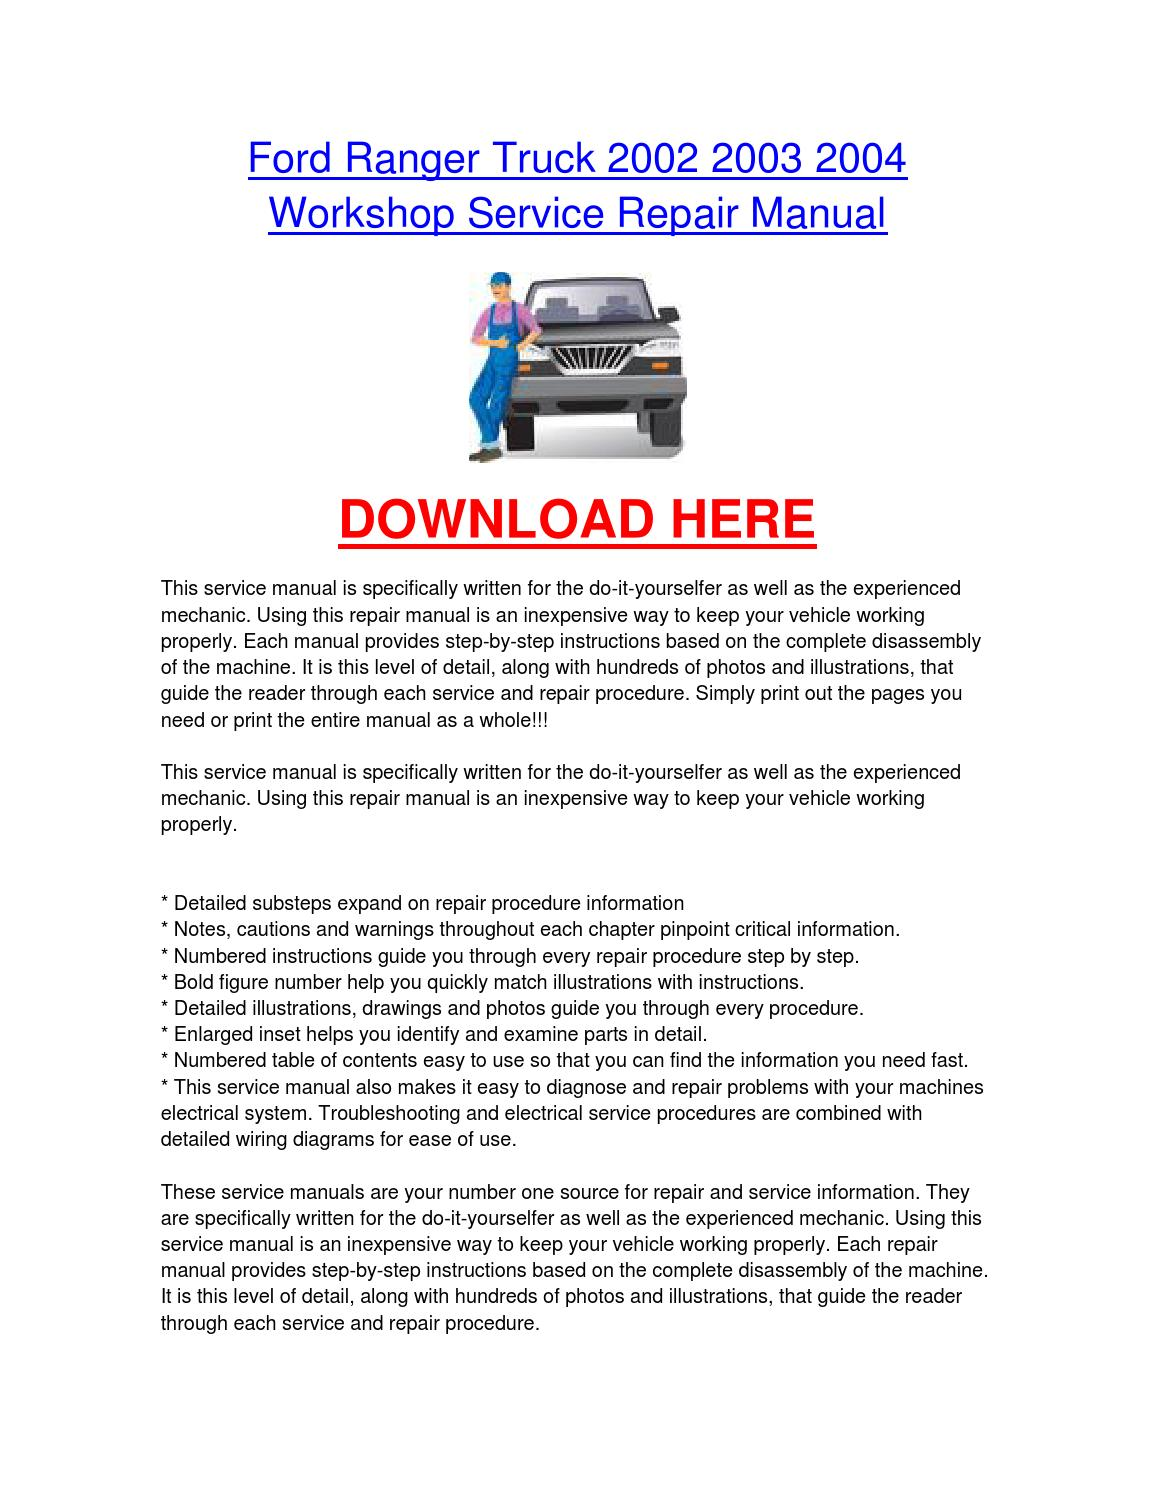 hight resolution of ford ranger truck 2002 2003 2004 workshop car service repair manual